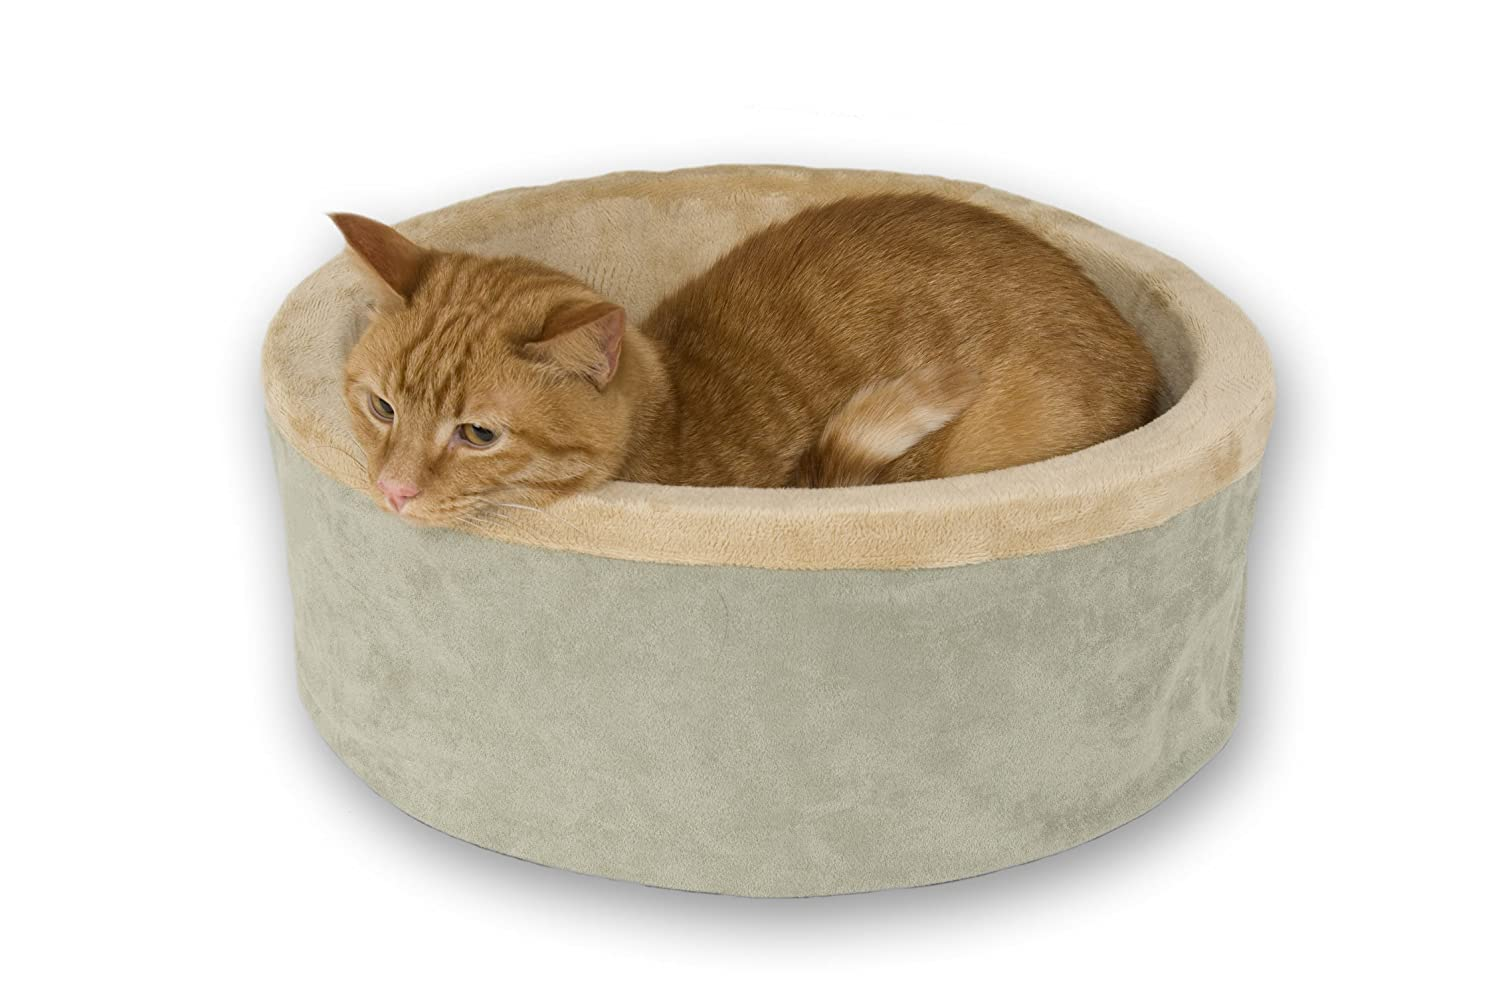 k h thermo kitty heated cat bed cat love. Black Bedroom Furniture Sets. Home Design Ideas